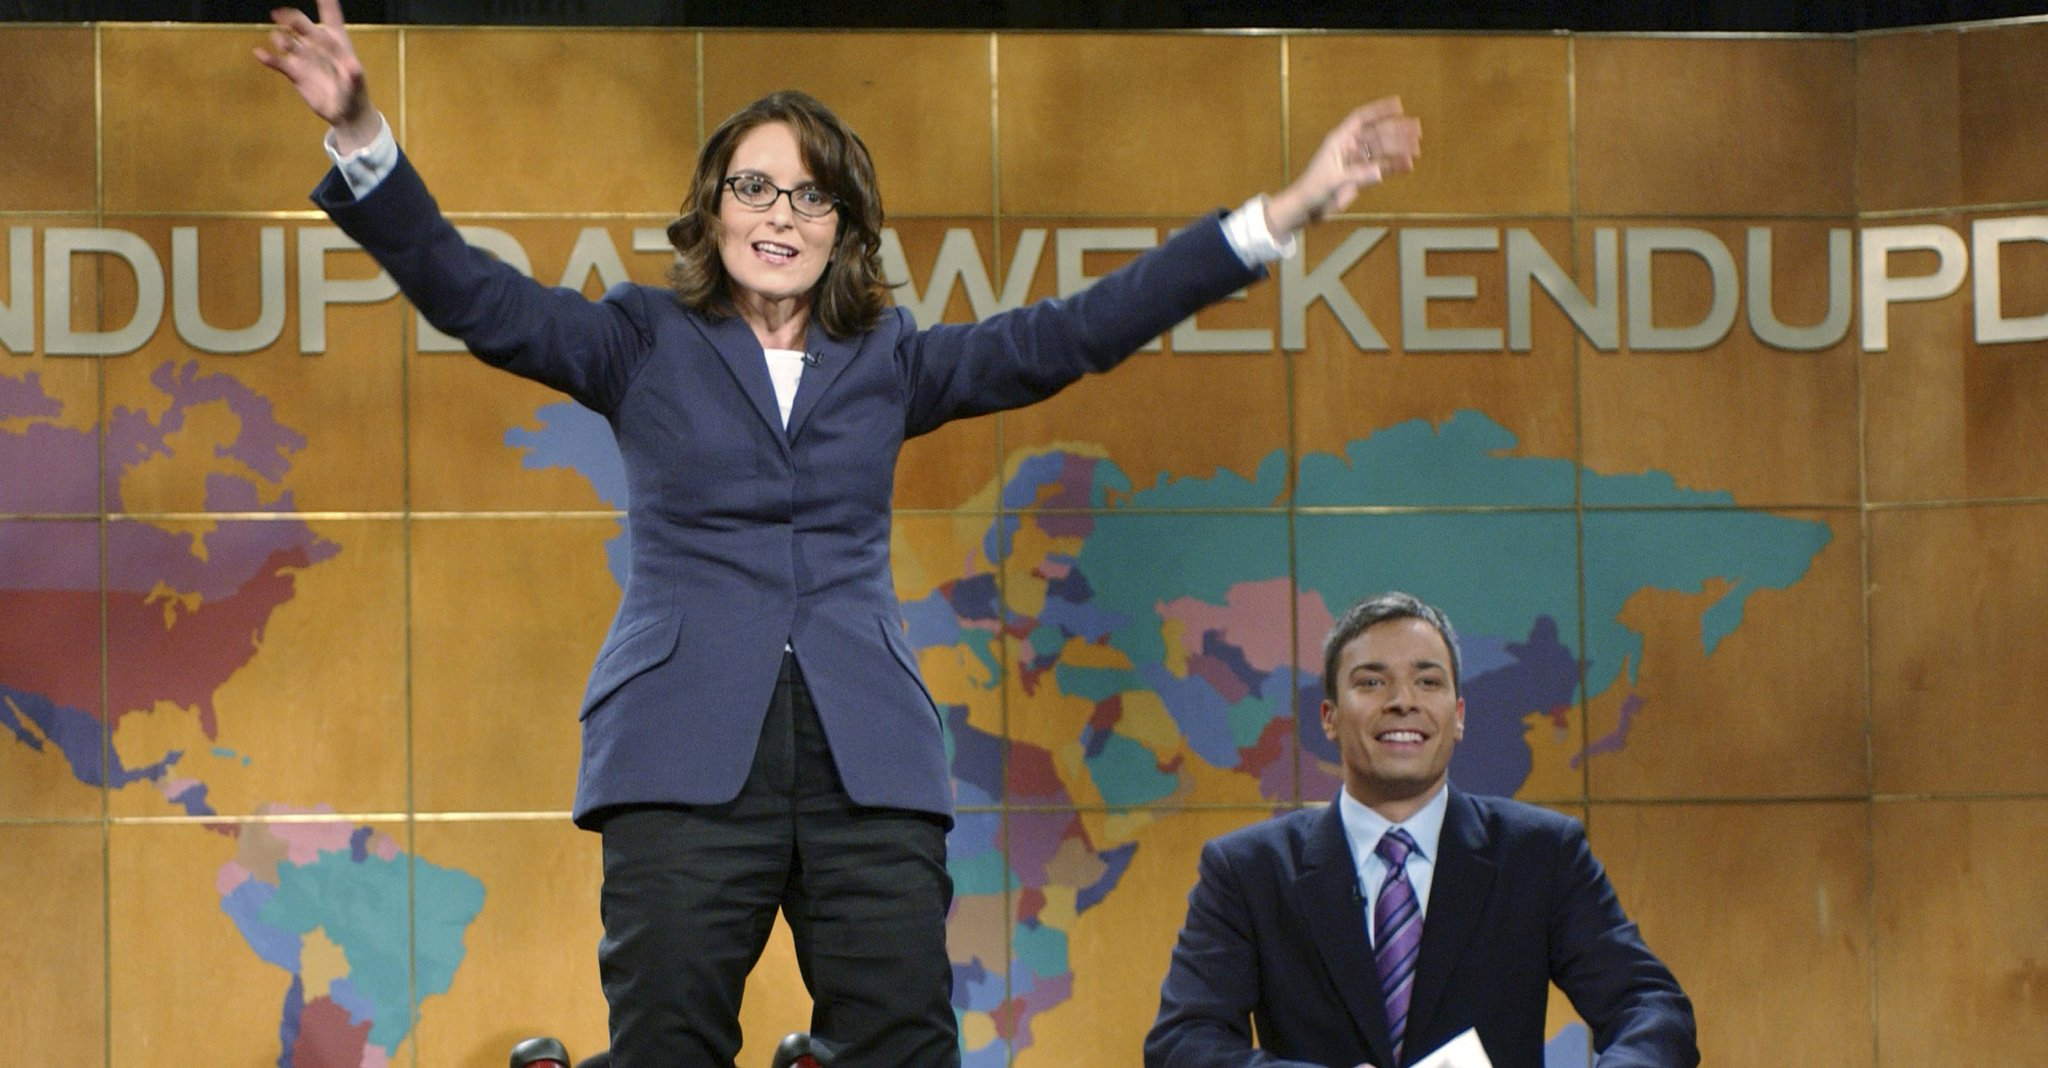 Happy birthday Tina Fey! See where she lands on our ranking of #SNL characters https://t.co/u6aXN5nKc6 https://t.co/CCeDHcOj9a